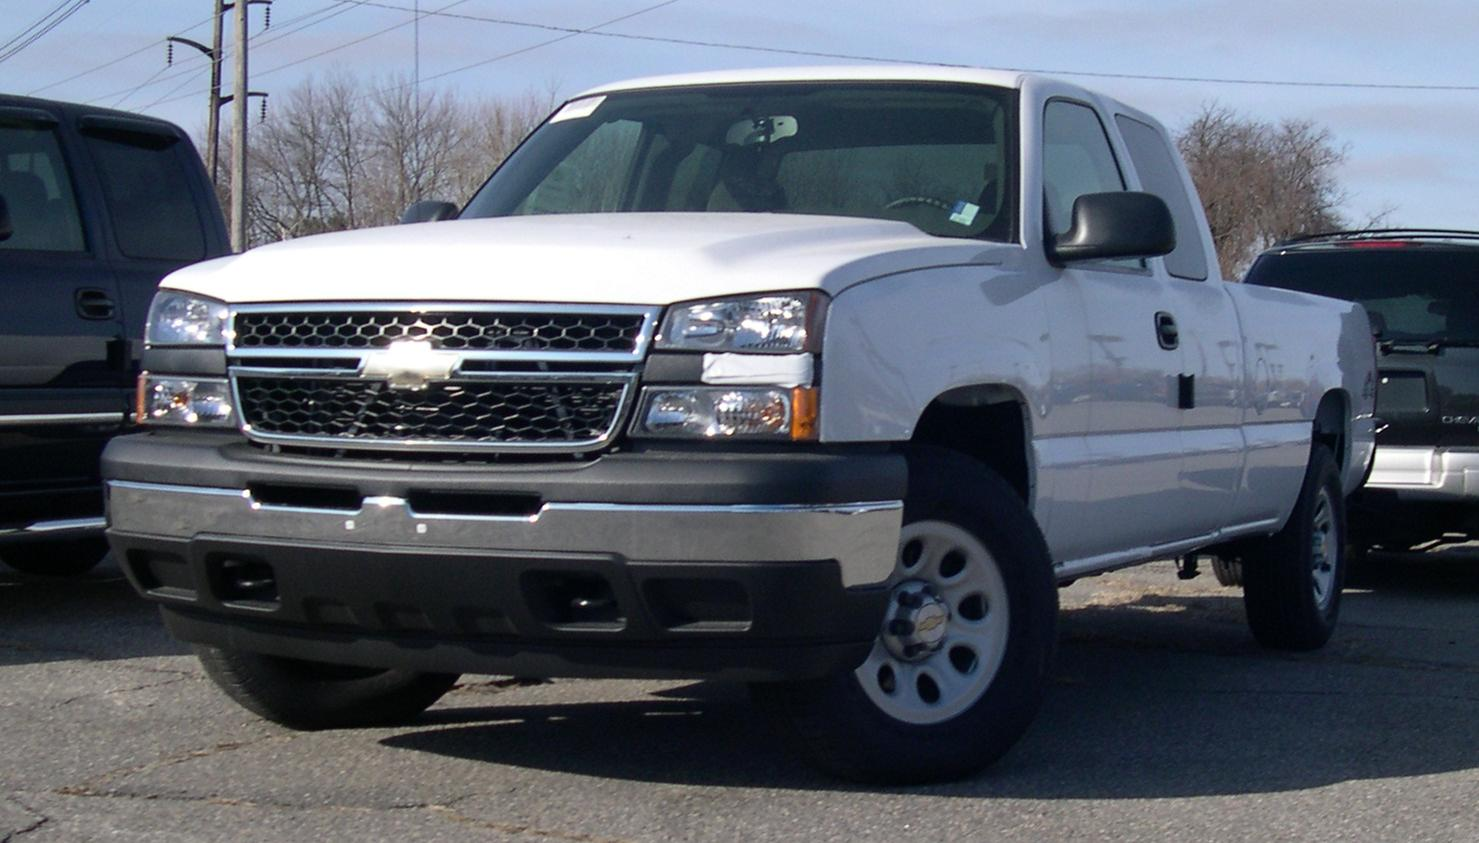 All Chevy chevy 2006 : All Chevy » 2006 Chevrolet 1500 - Old Chevy Photos Collection, All ...